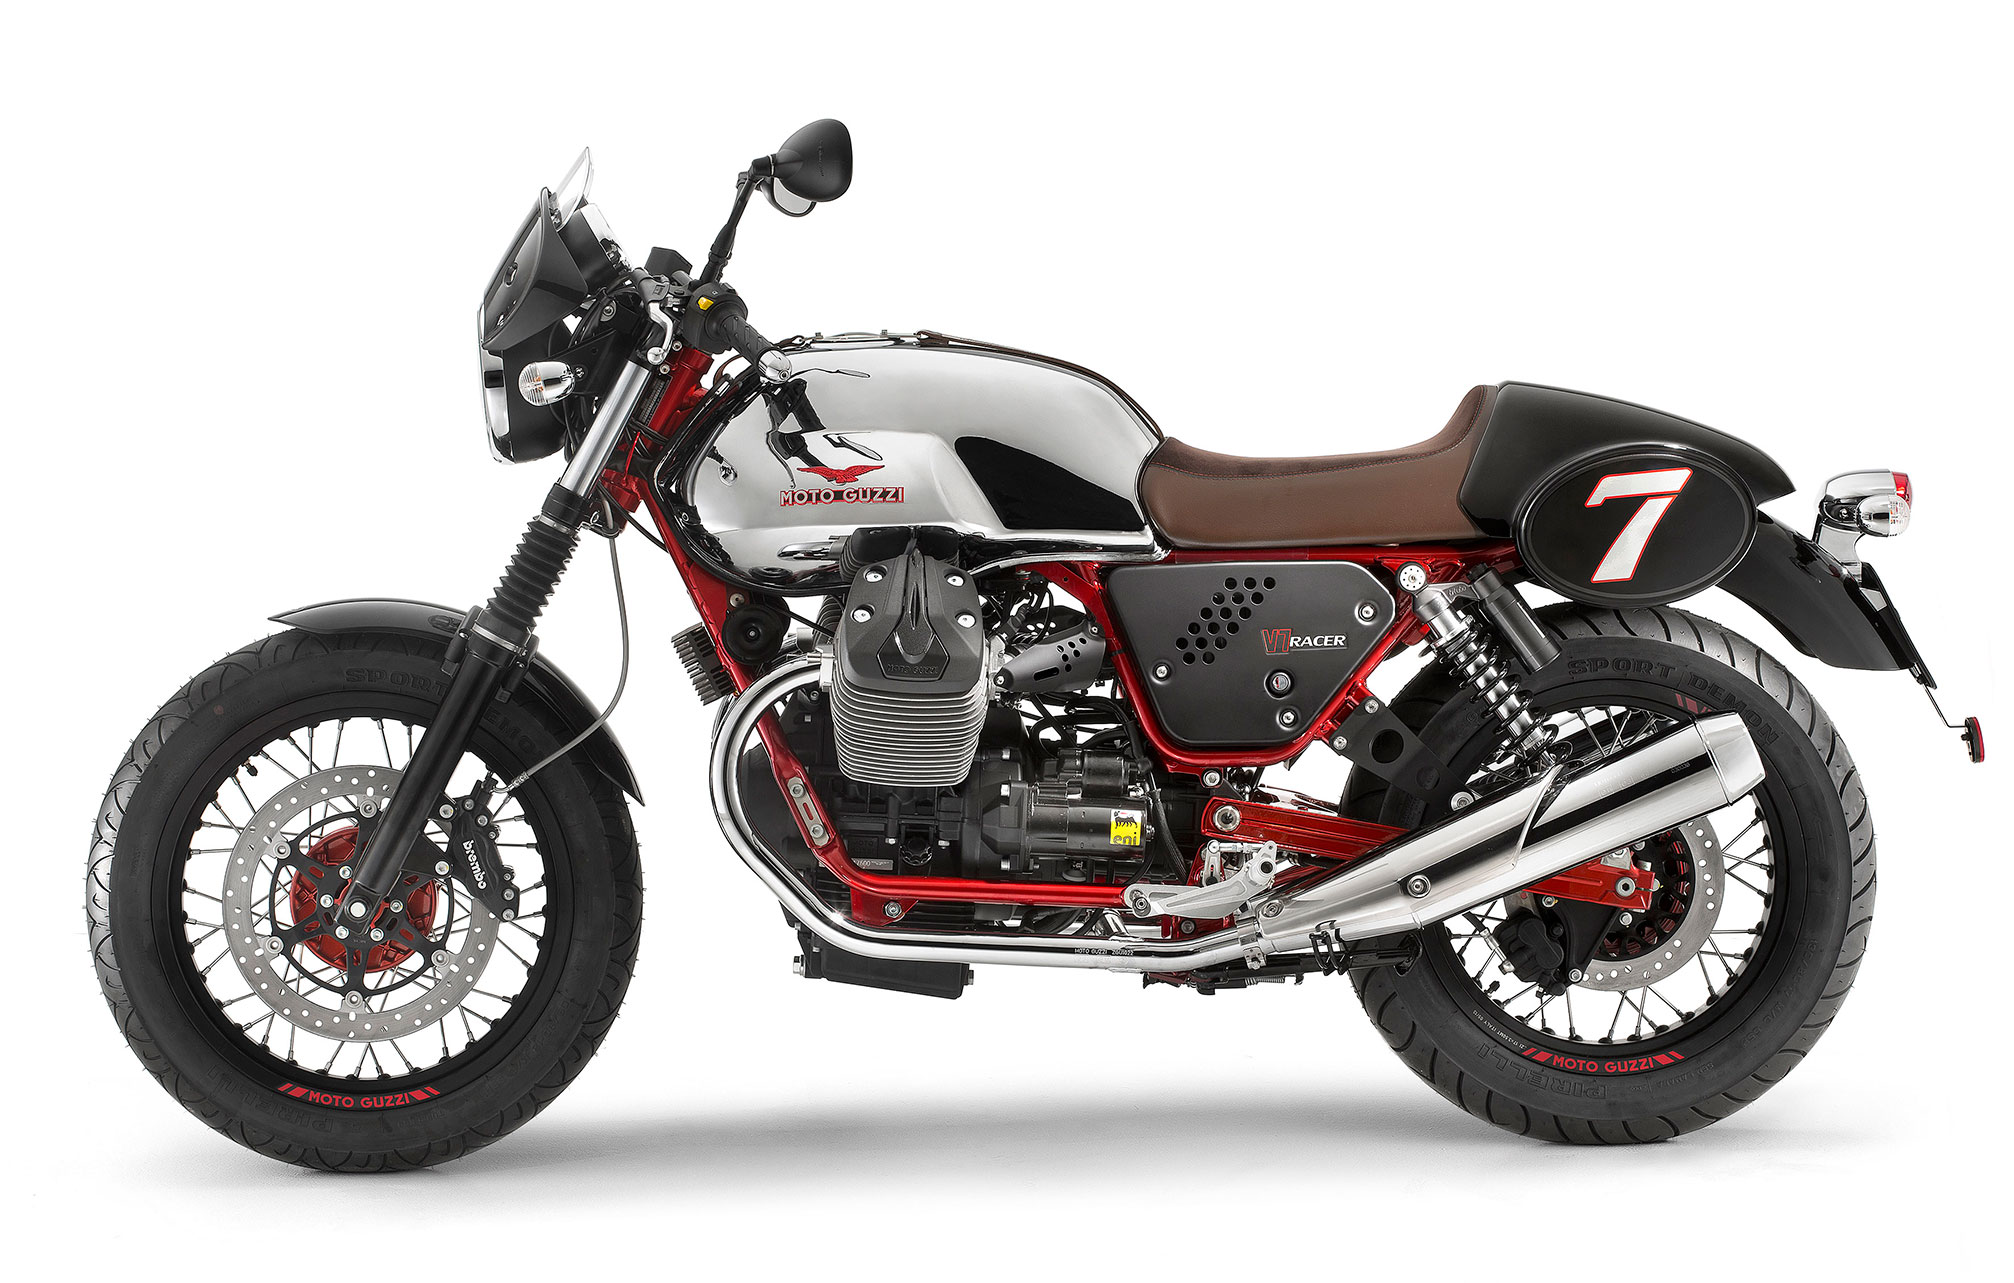 Moto Guzzi V7 Racer Limited Edition 2011 images #109579